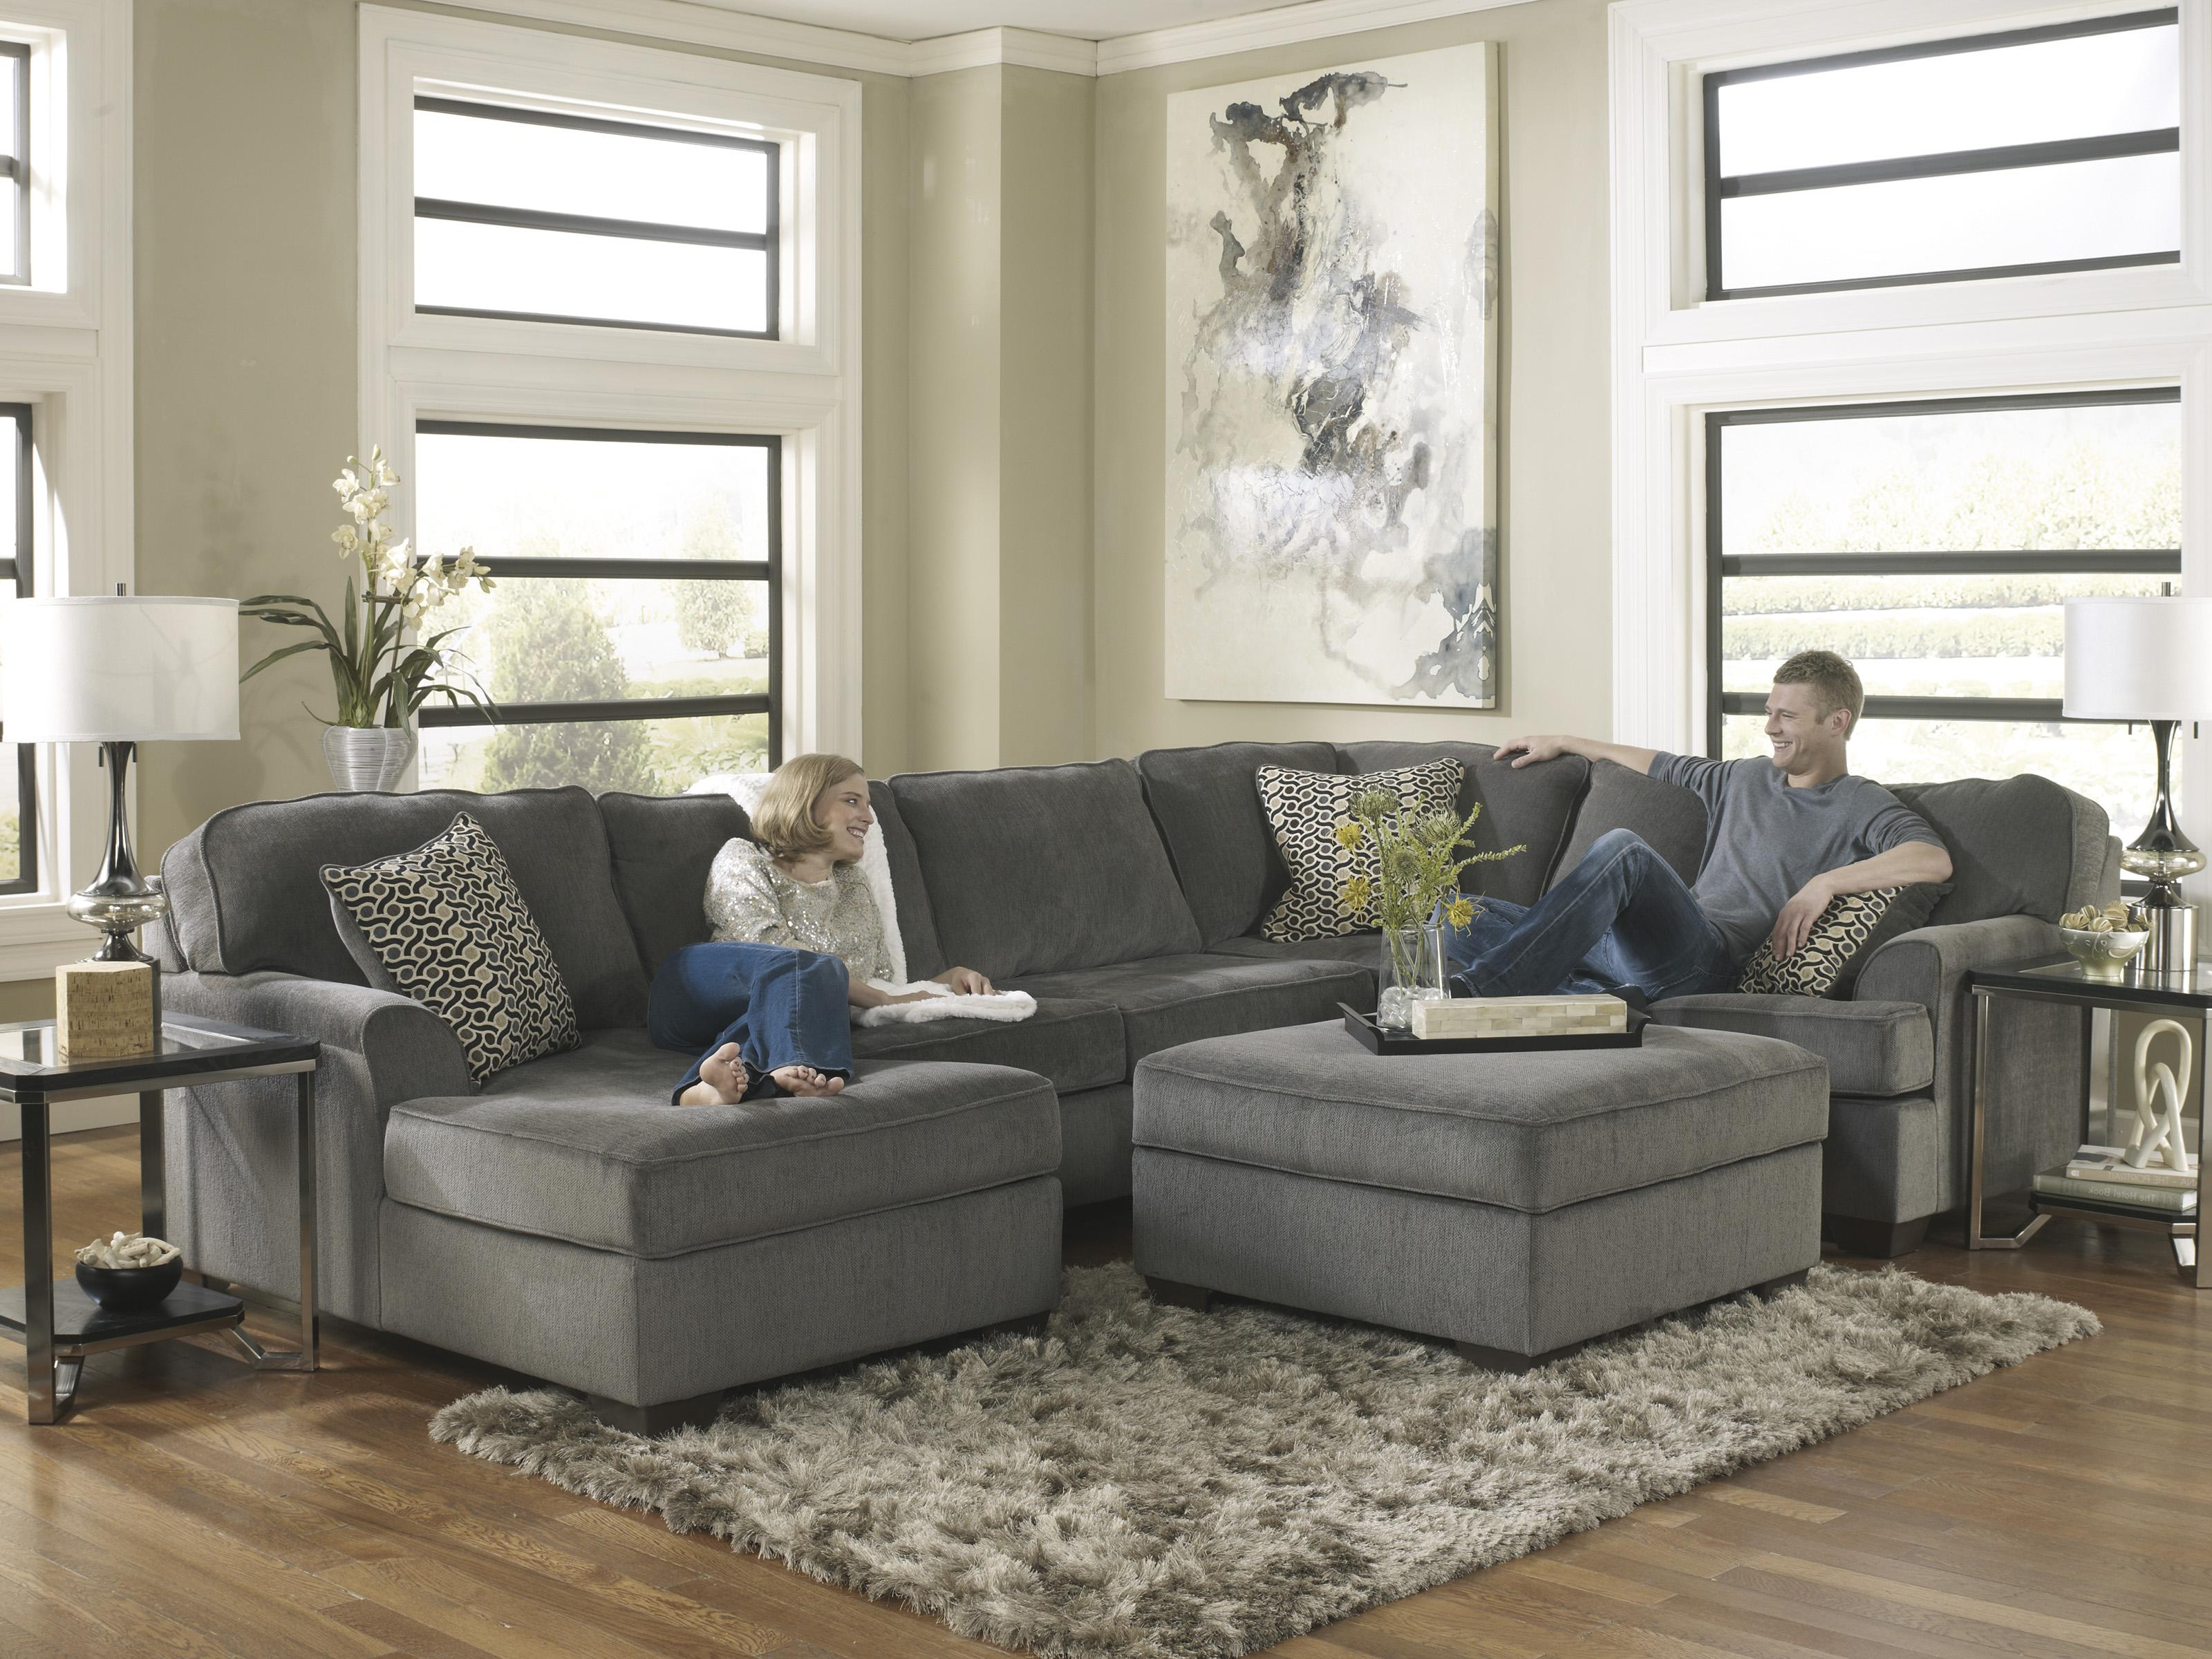 Ashley Furniture Loric Smoke Contemporary 3 Piece Sectional With Left Chaise John